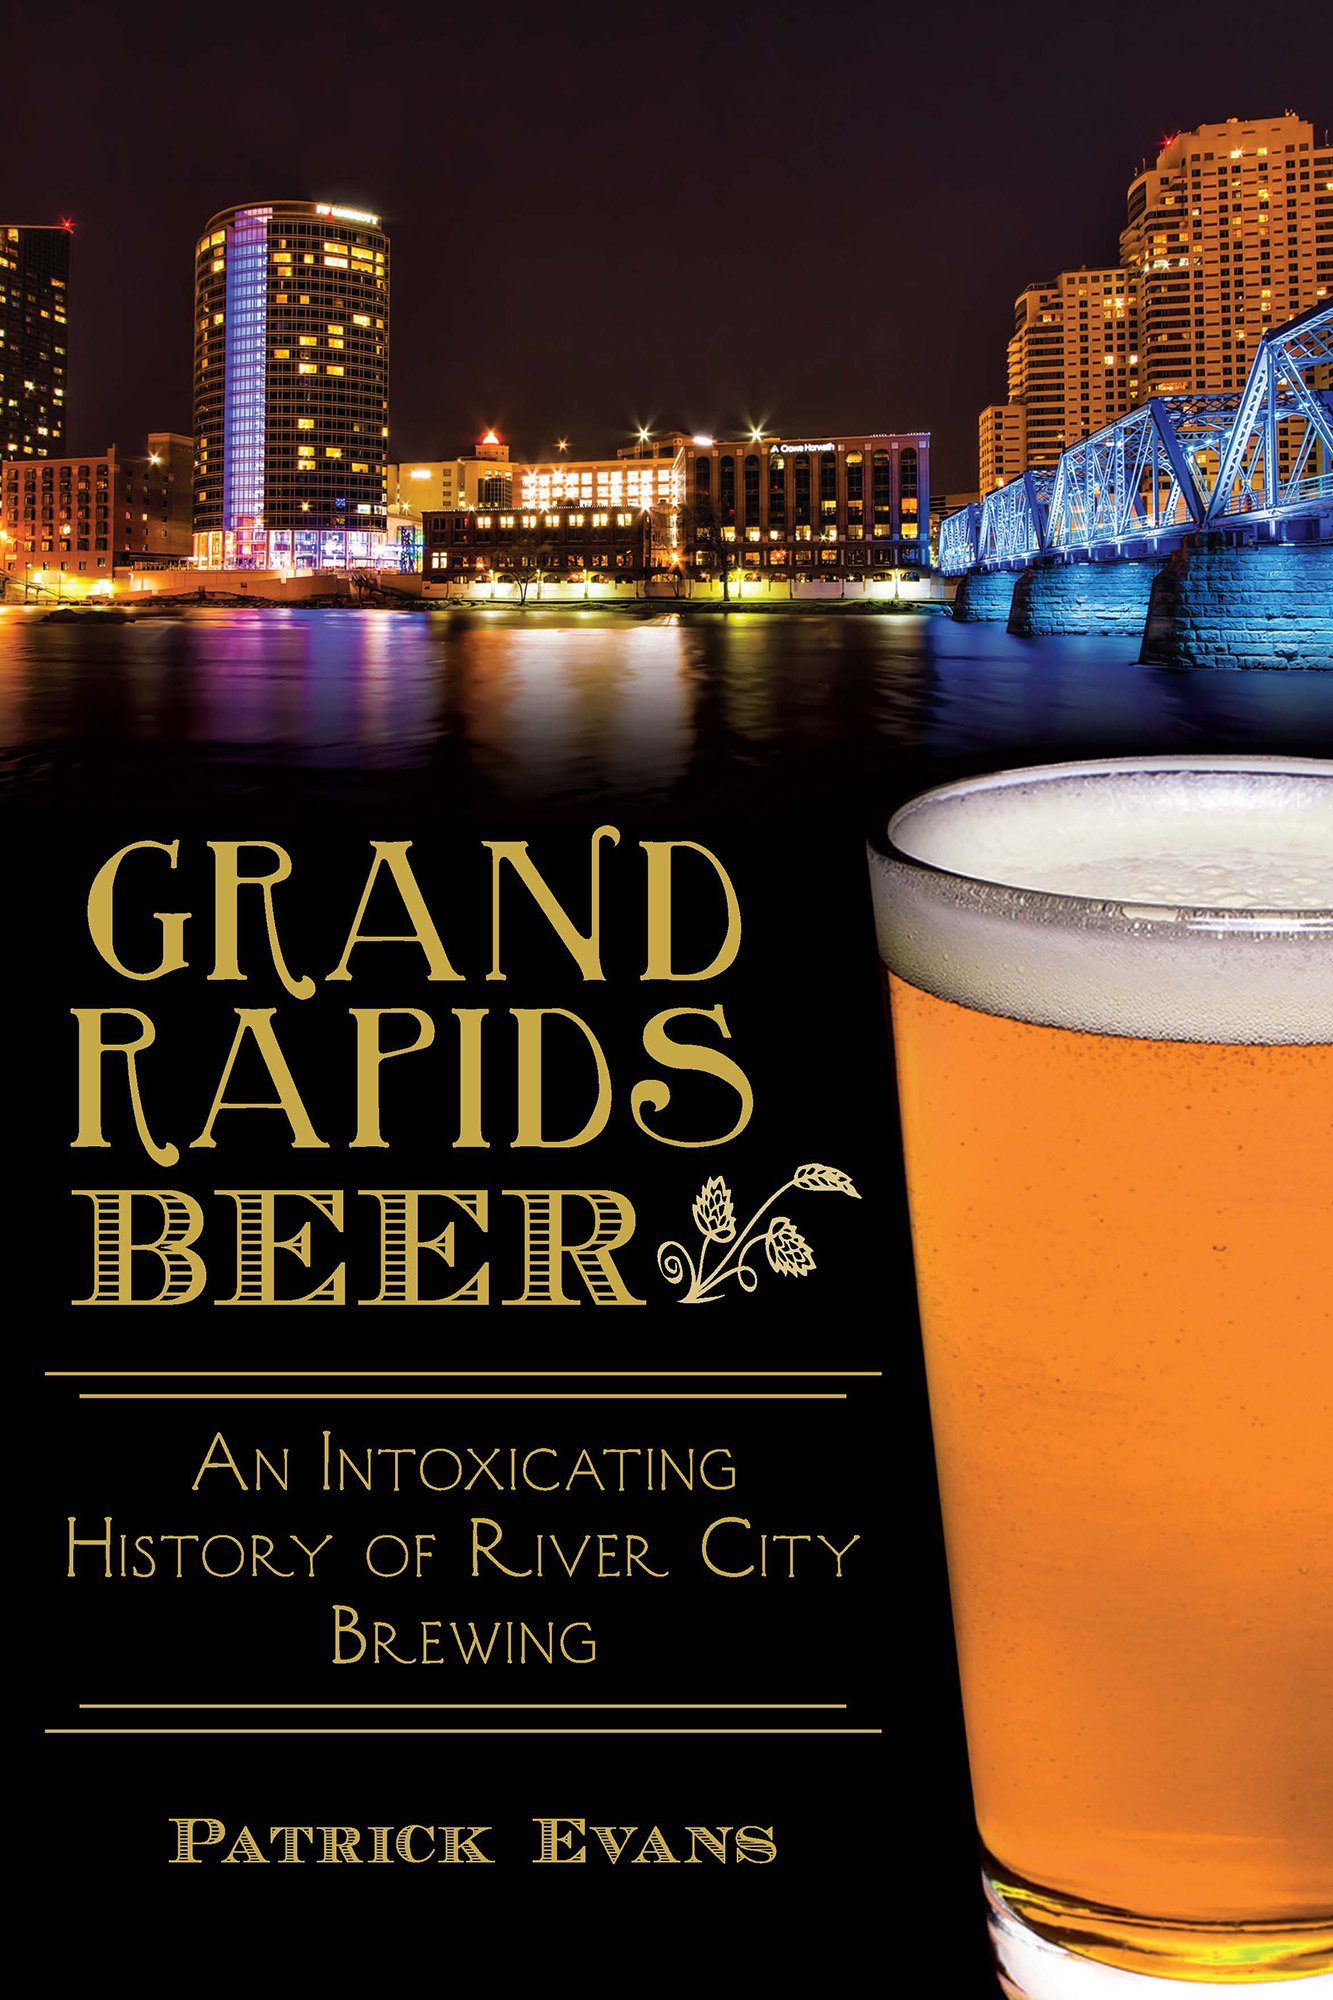 Grand Rapids Beer Intoxicating American product image